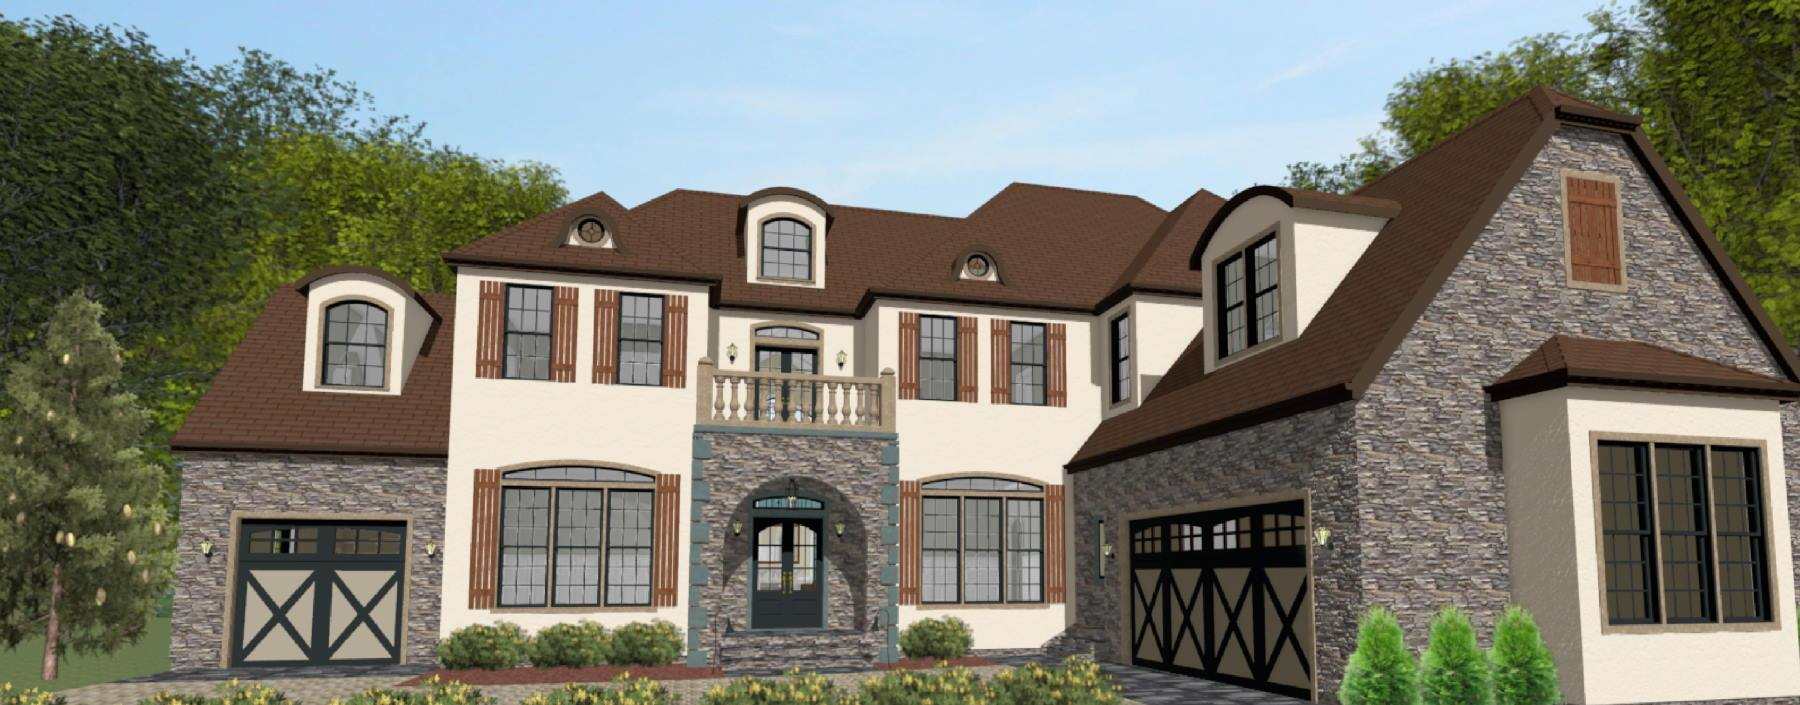 French Country style exterior with a brick and segmental dormers.